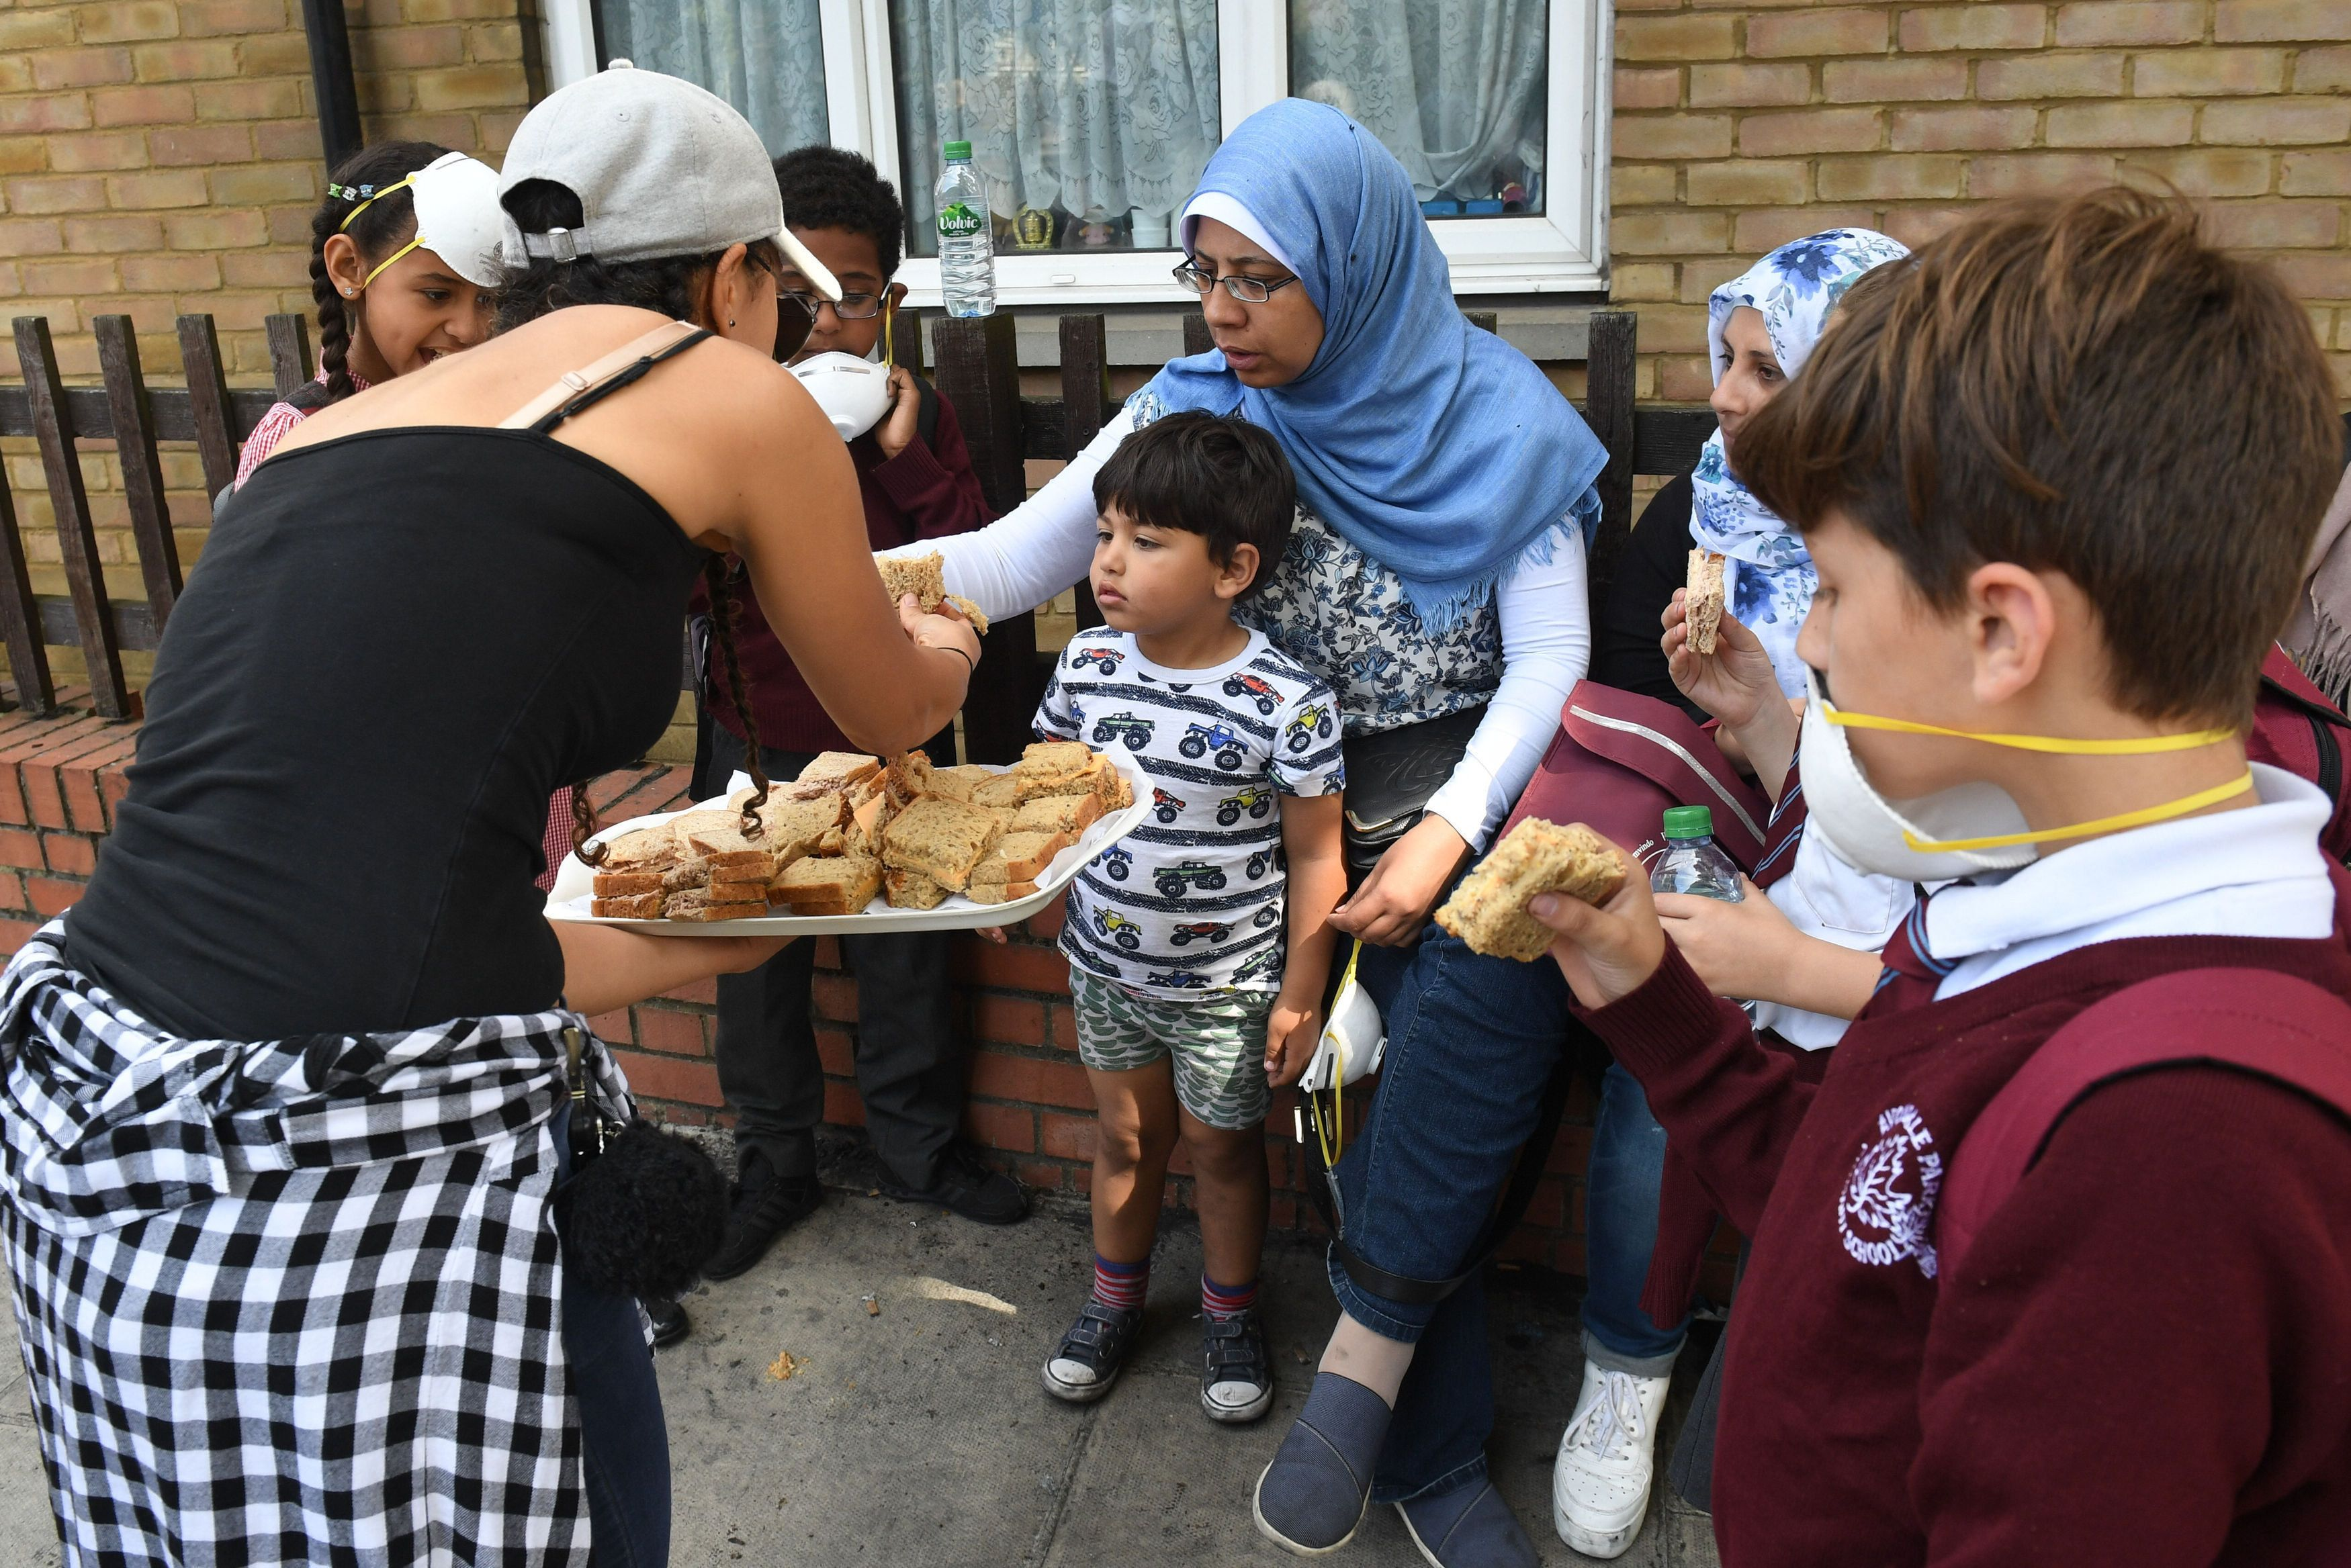 London Fire: Locals Praise Muslims For Helping Save